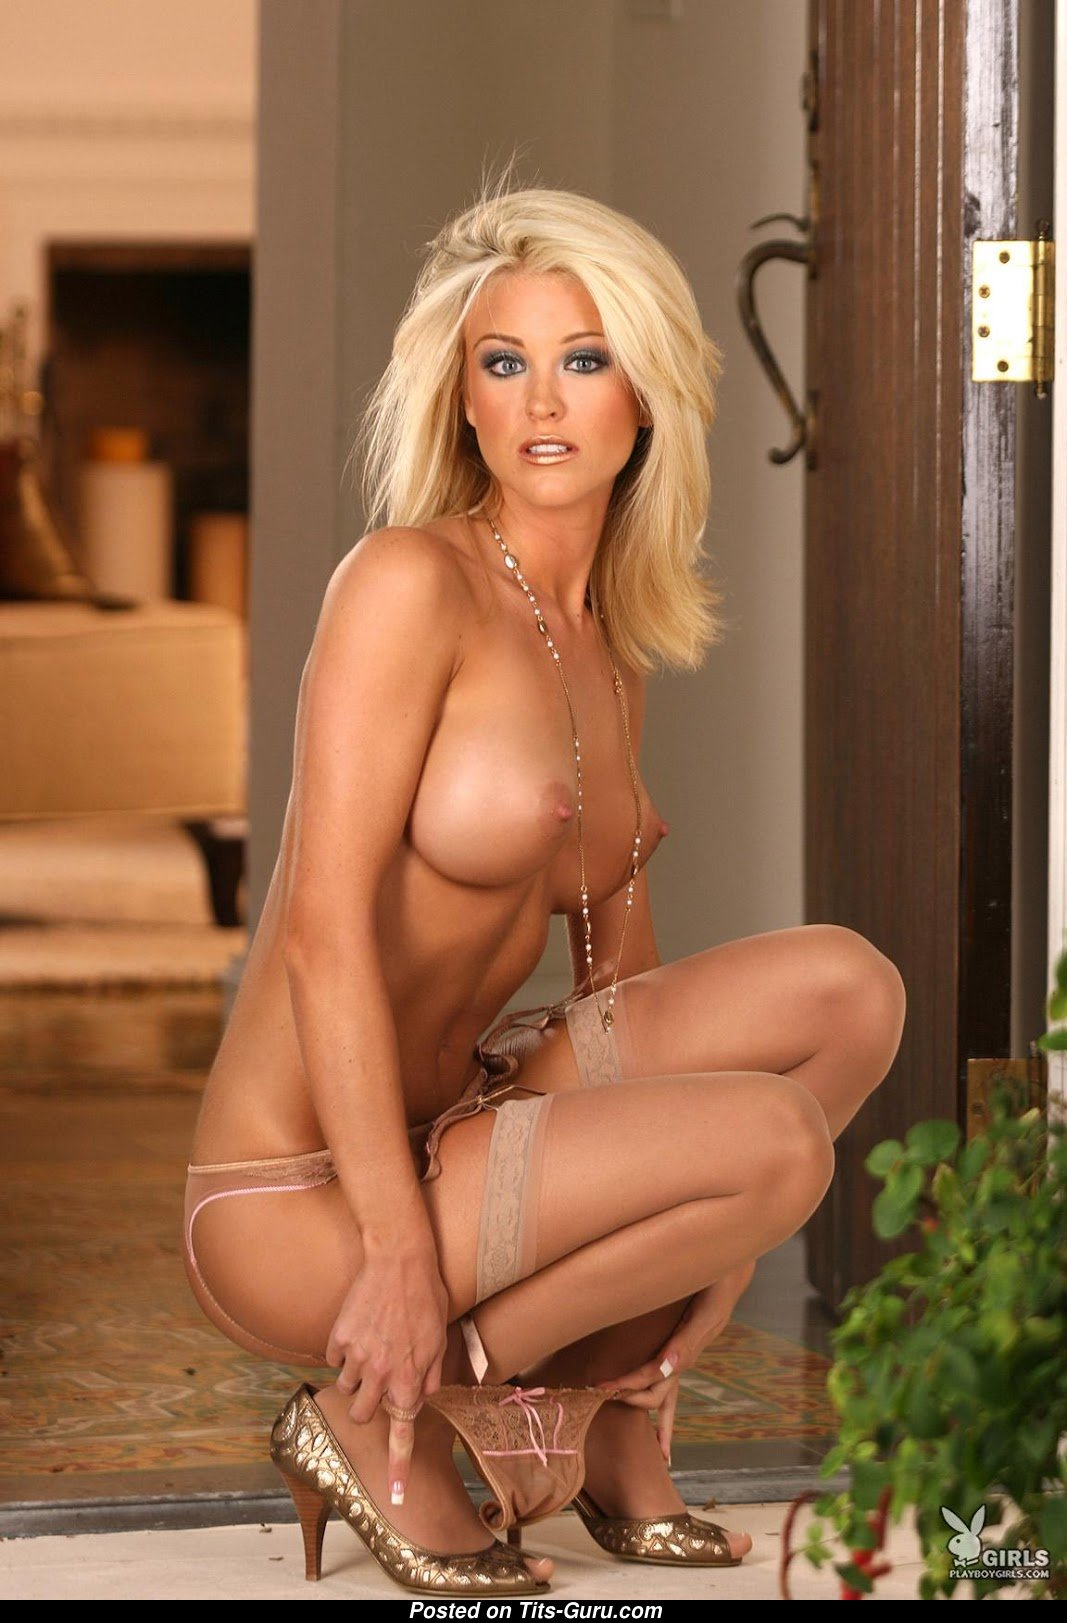 Ashley Lowe - Playboy Blonde With Bald C Size Breasts In -9996